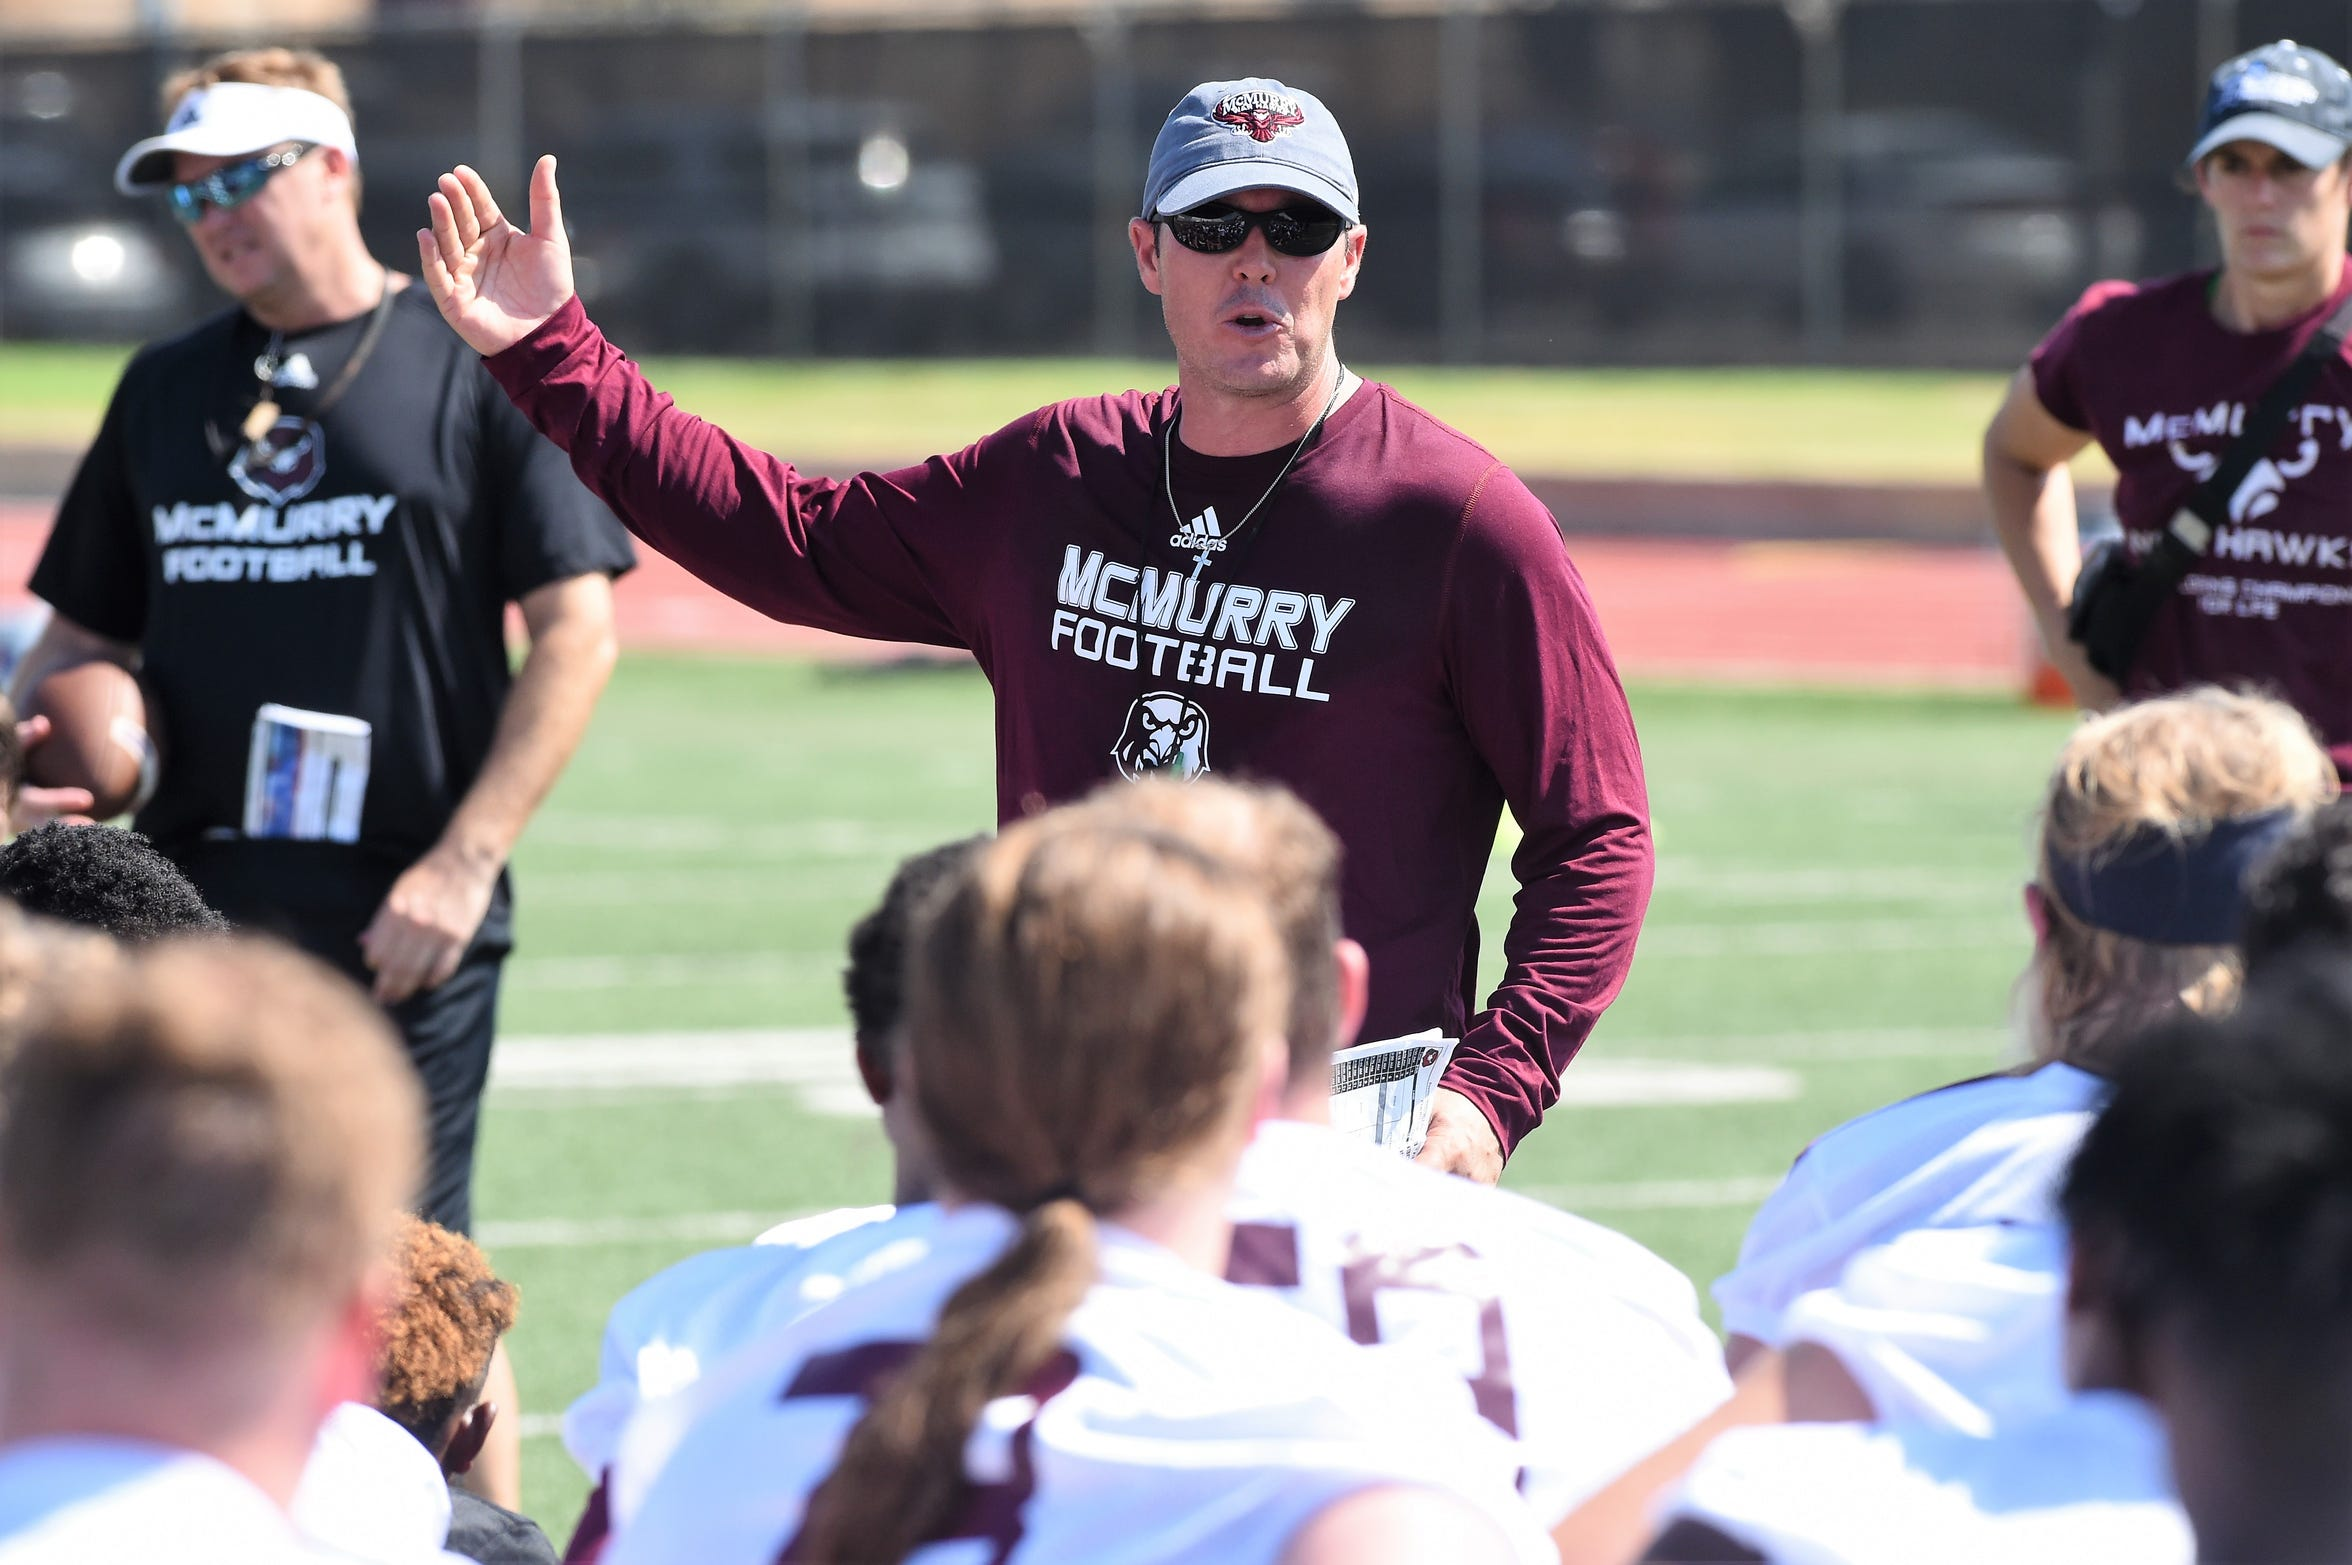 Former Cooper and Hardin-Simmons quarterback Jordan Neal returned to Abilene to take over the McMurry football program. The War Hawks went 0-10 in Neal's first season.